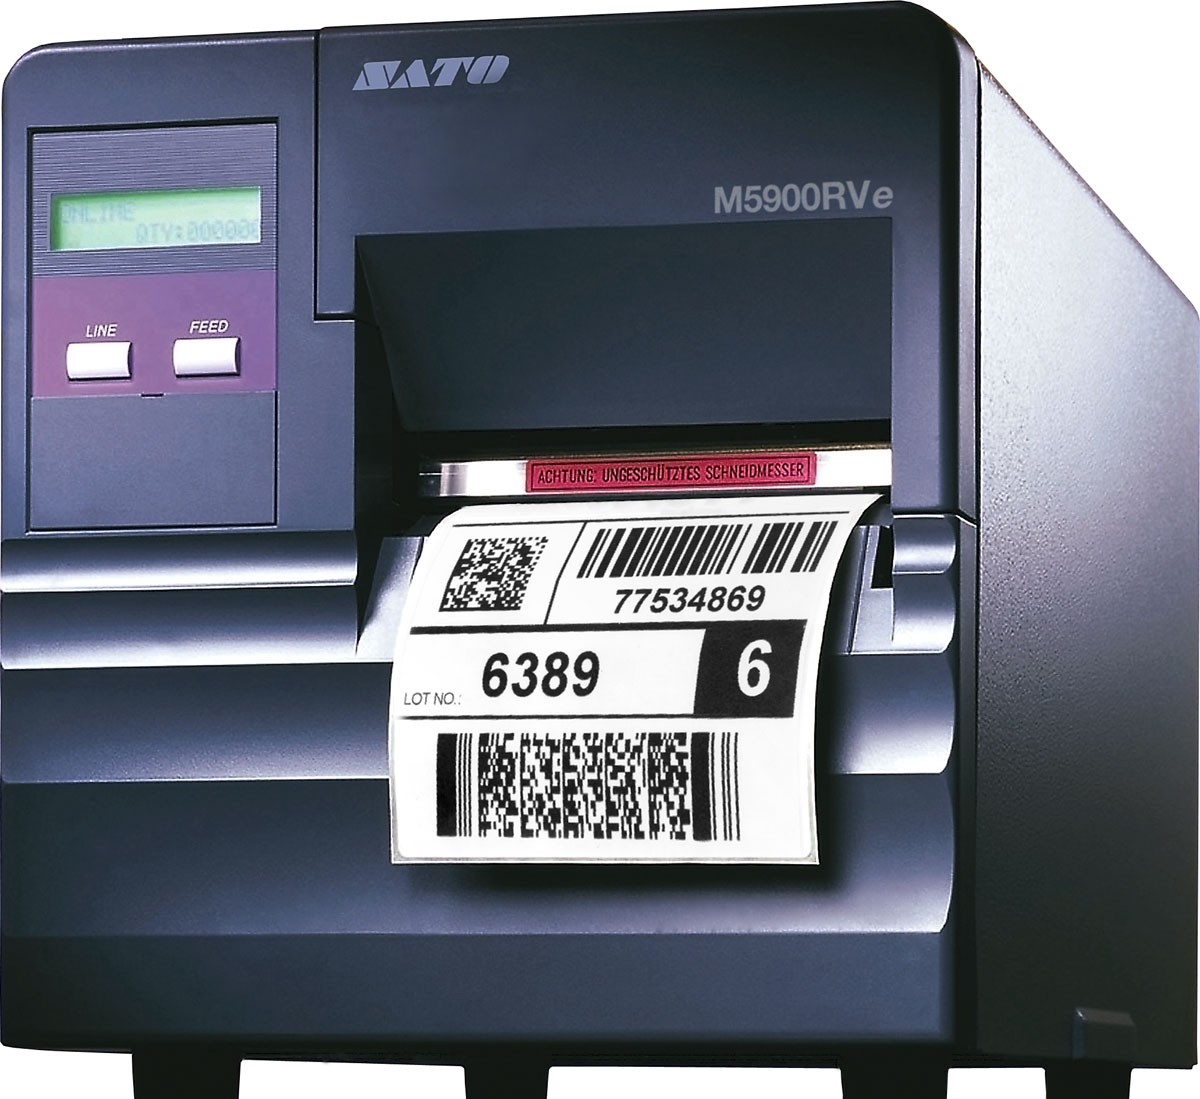 Sato M5900RVe Thermal Printer